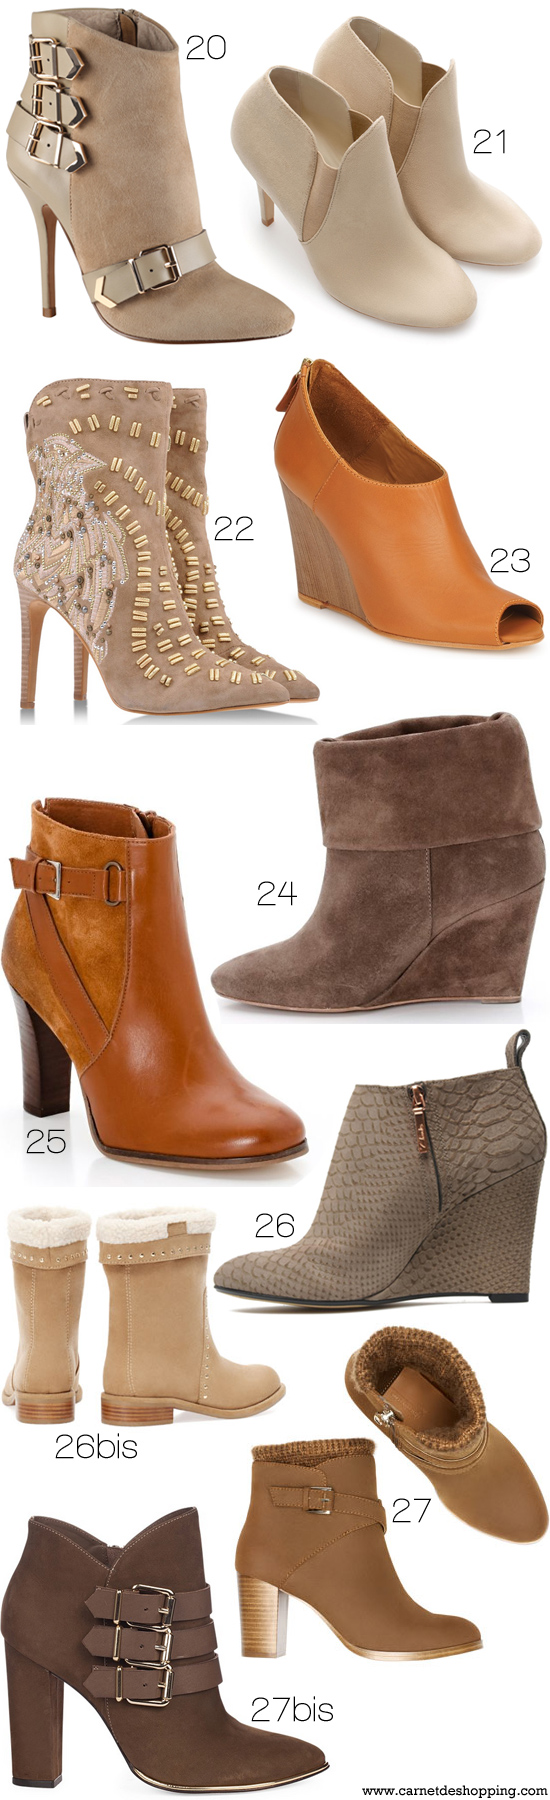 boots-automne-hiver-13_camel